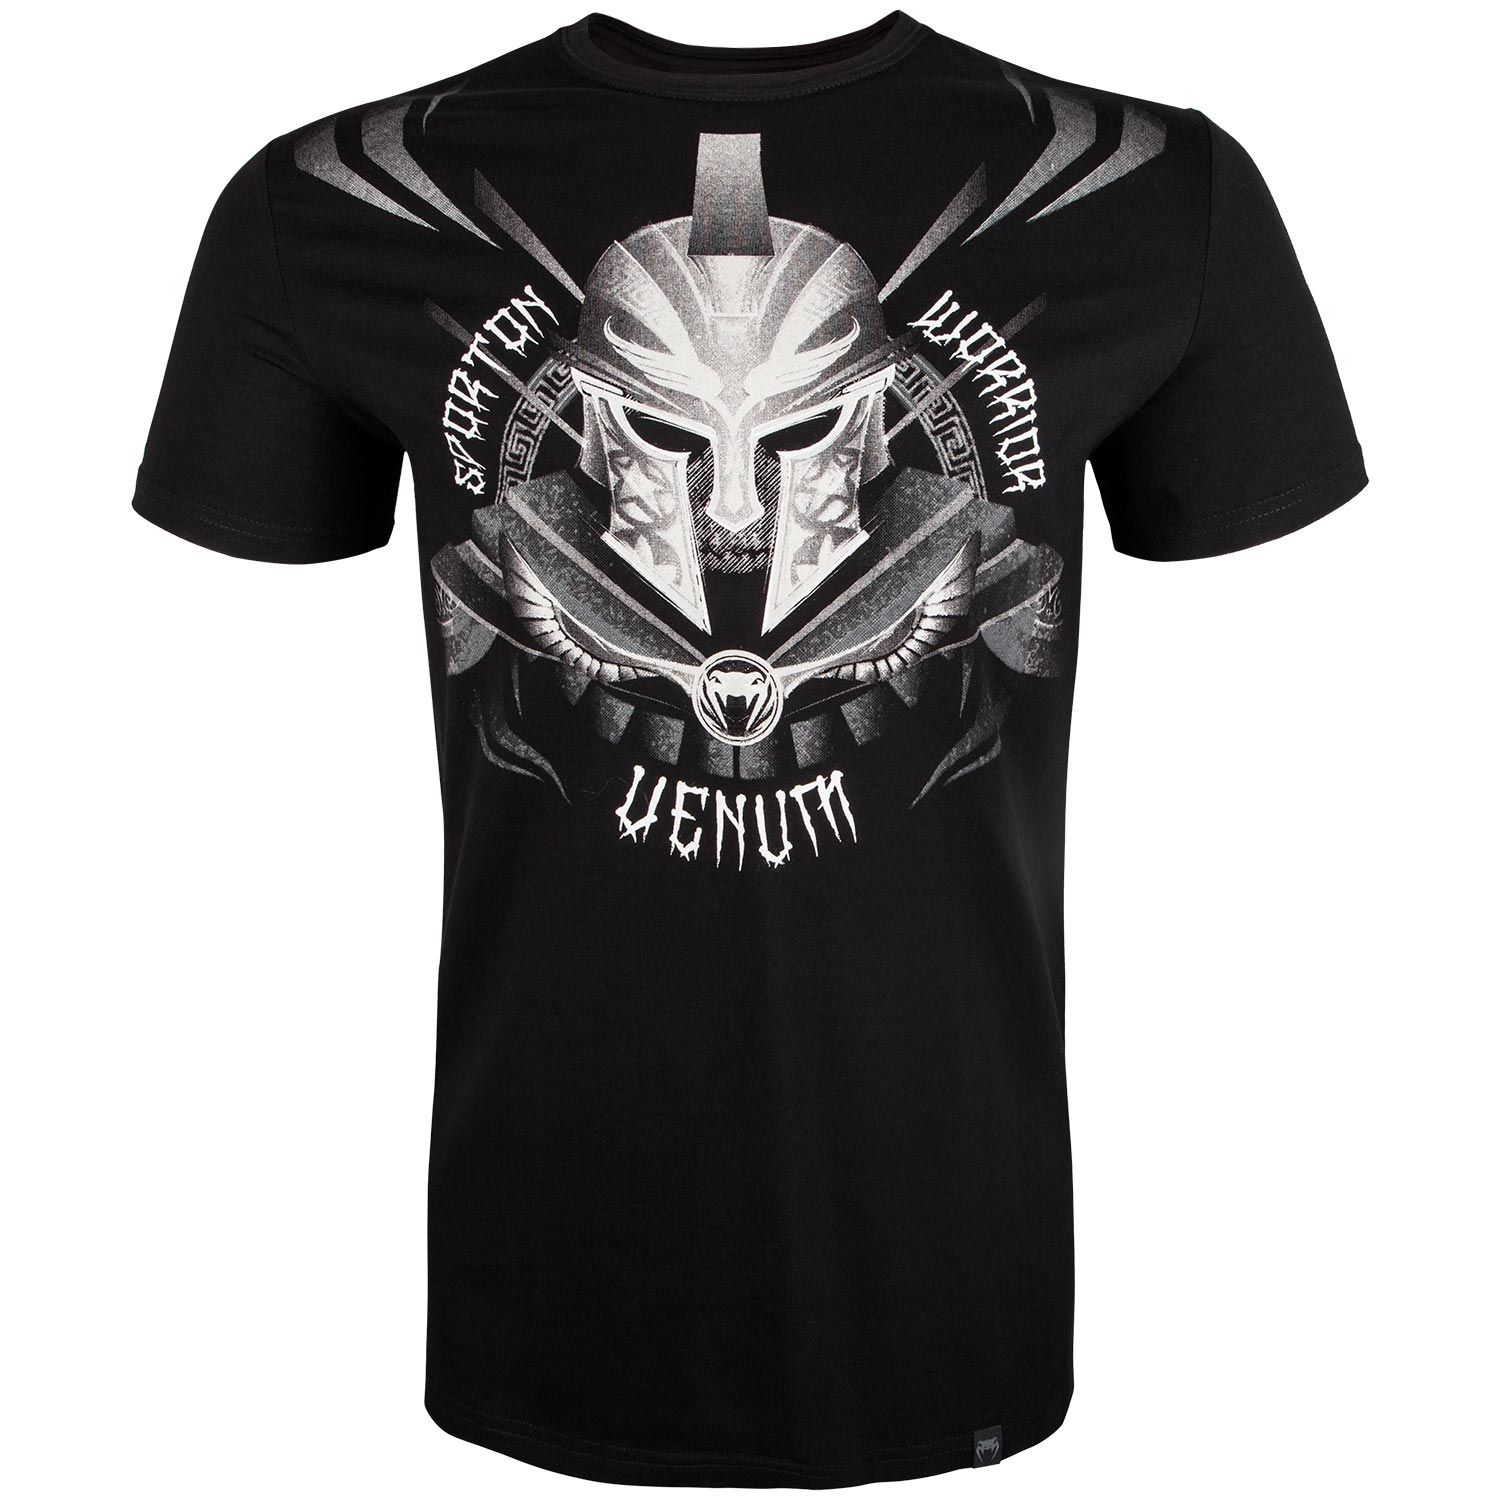 T-shirt Venum Gladiator 3.0 - Noir/Blanc - Exclusivité